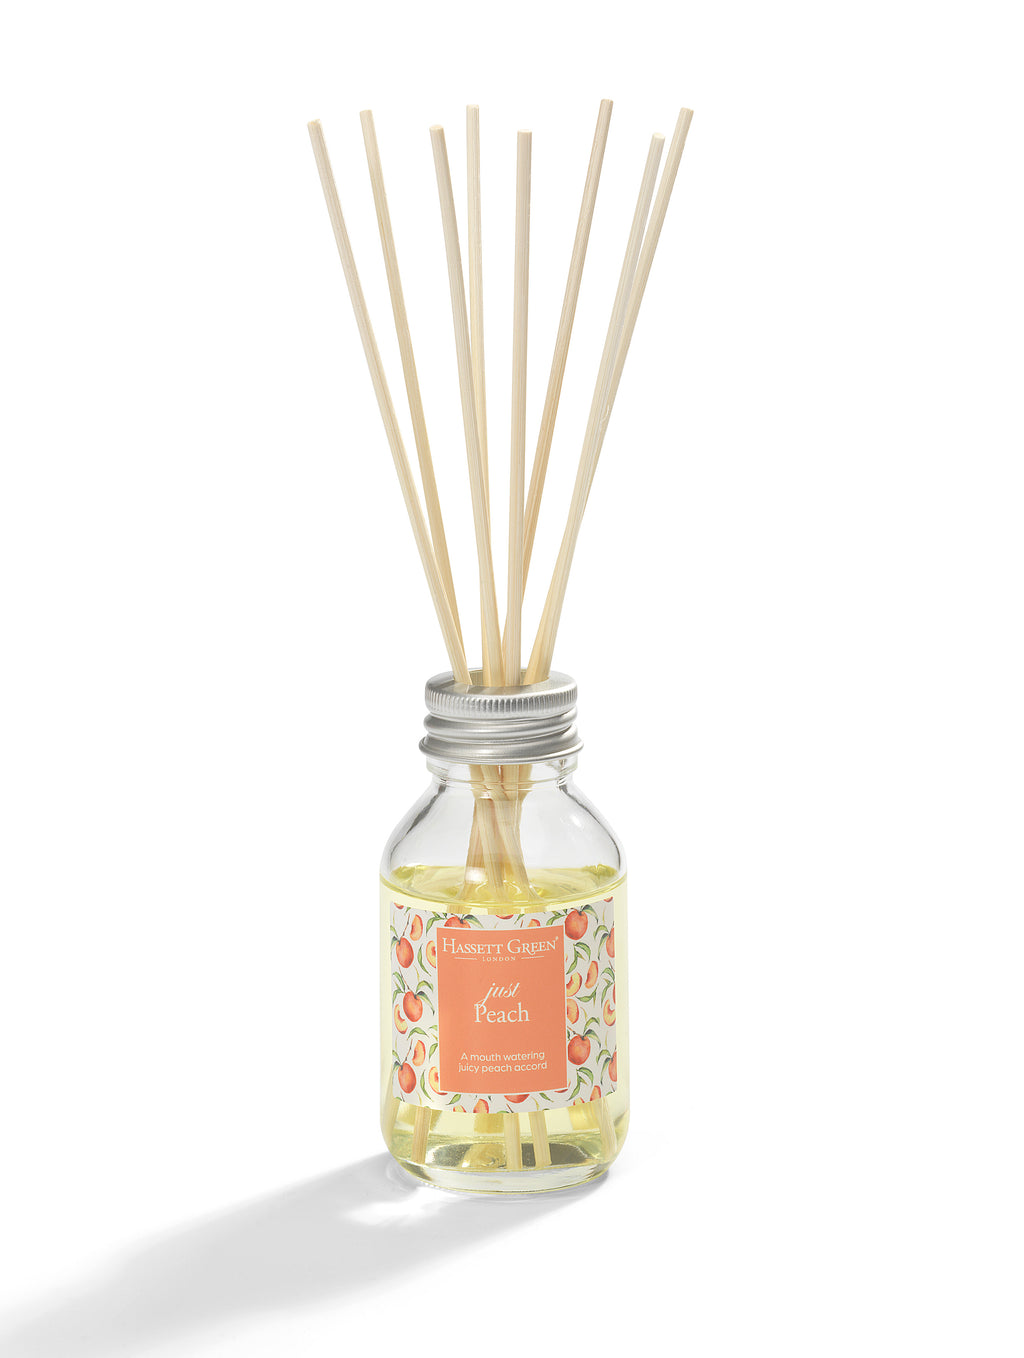 Just Peach - Fragrance Reed Diffuser 100ml